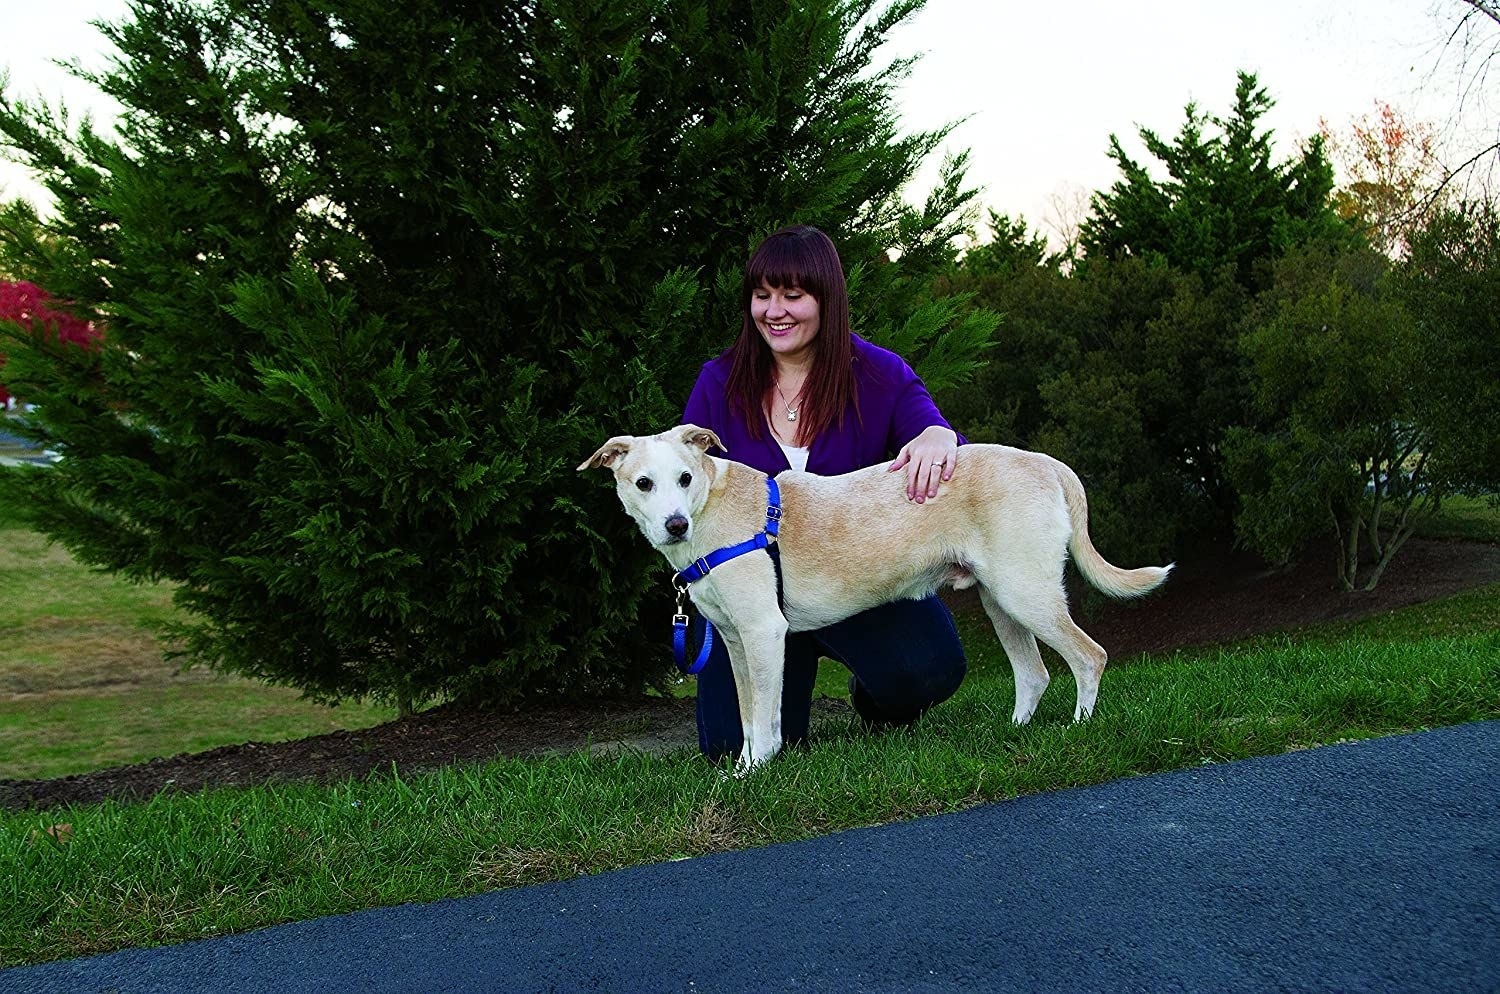 A person holding their dog, it is wearing the harness